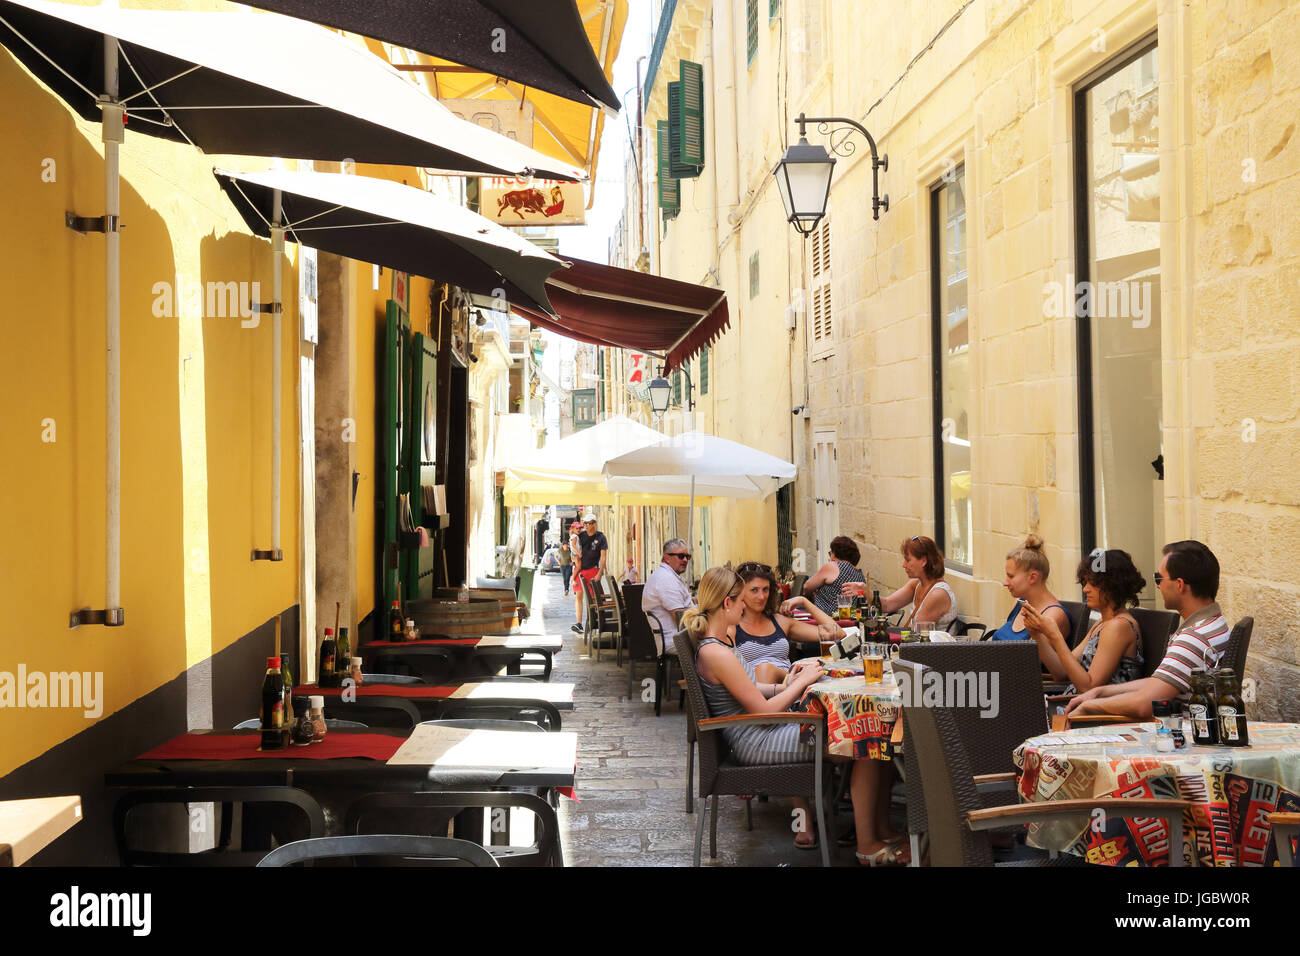 Loop Bar, one of the most famous bars and restaurants on the infamous Strait Street, in Valletta, Malta, once a - Stock Image